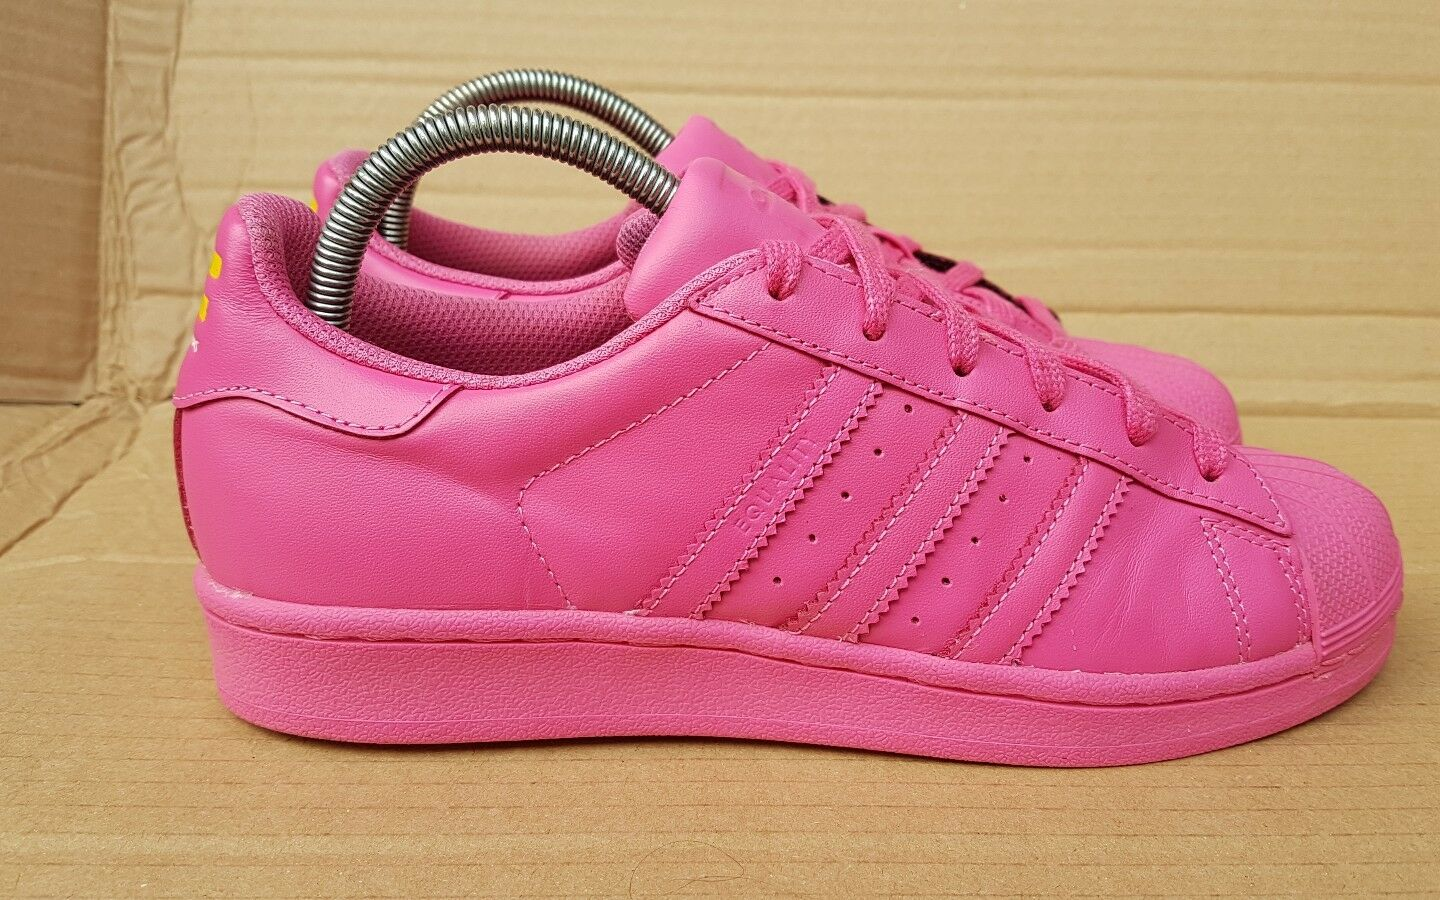 Magnifique Adidas Superstar Pharrell Williams Shell Toe Baskets taille 3 UK Rose